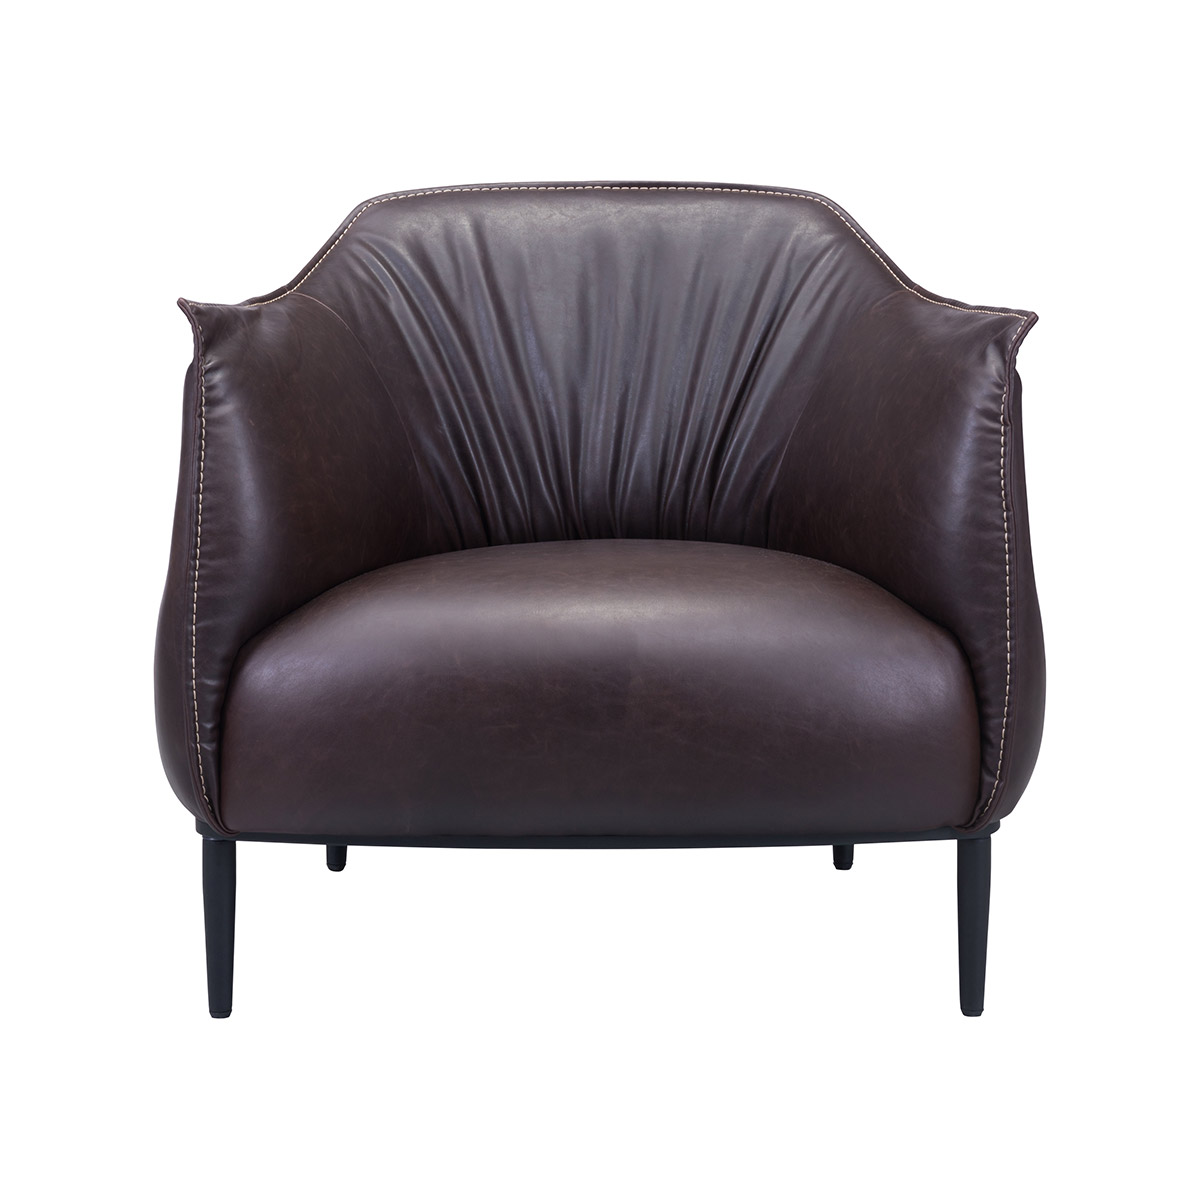 Zuo Era Julian Occasional Faux Leather Chair Espresso